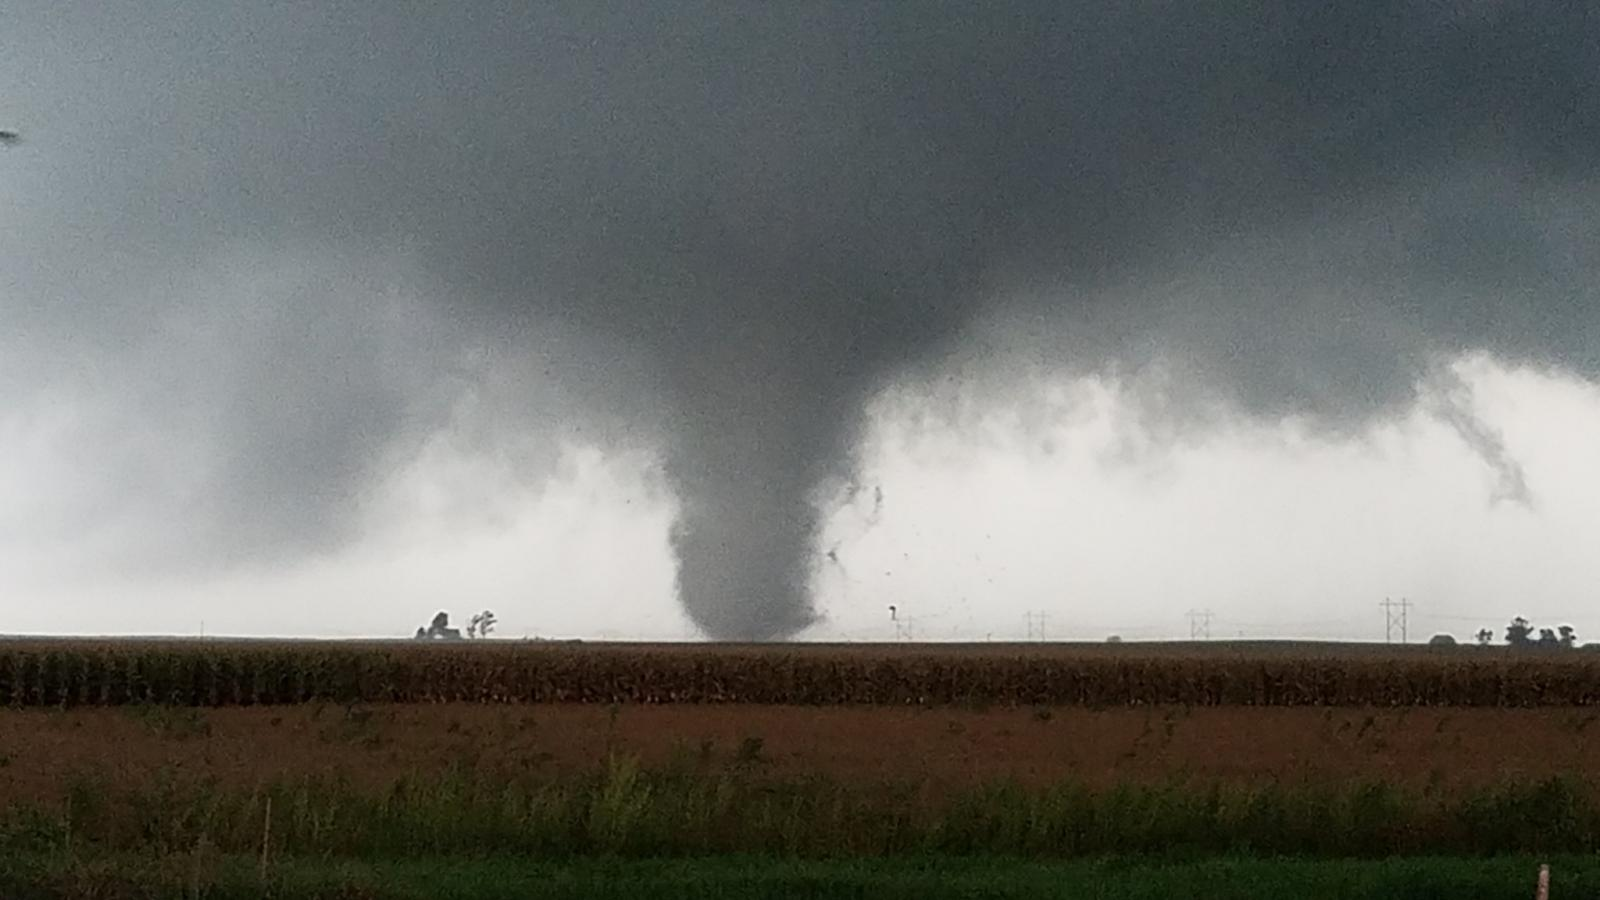 Champaign County, IL EF2 Tornado – September 9, 2016